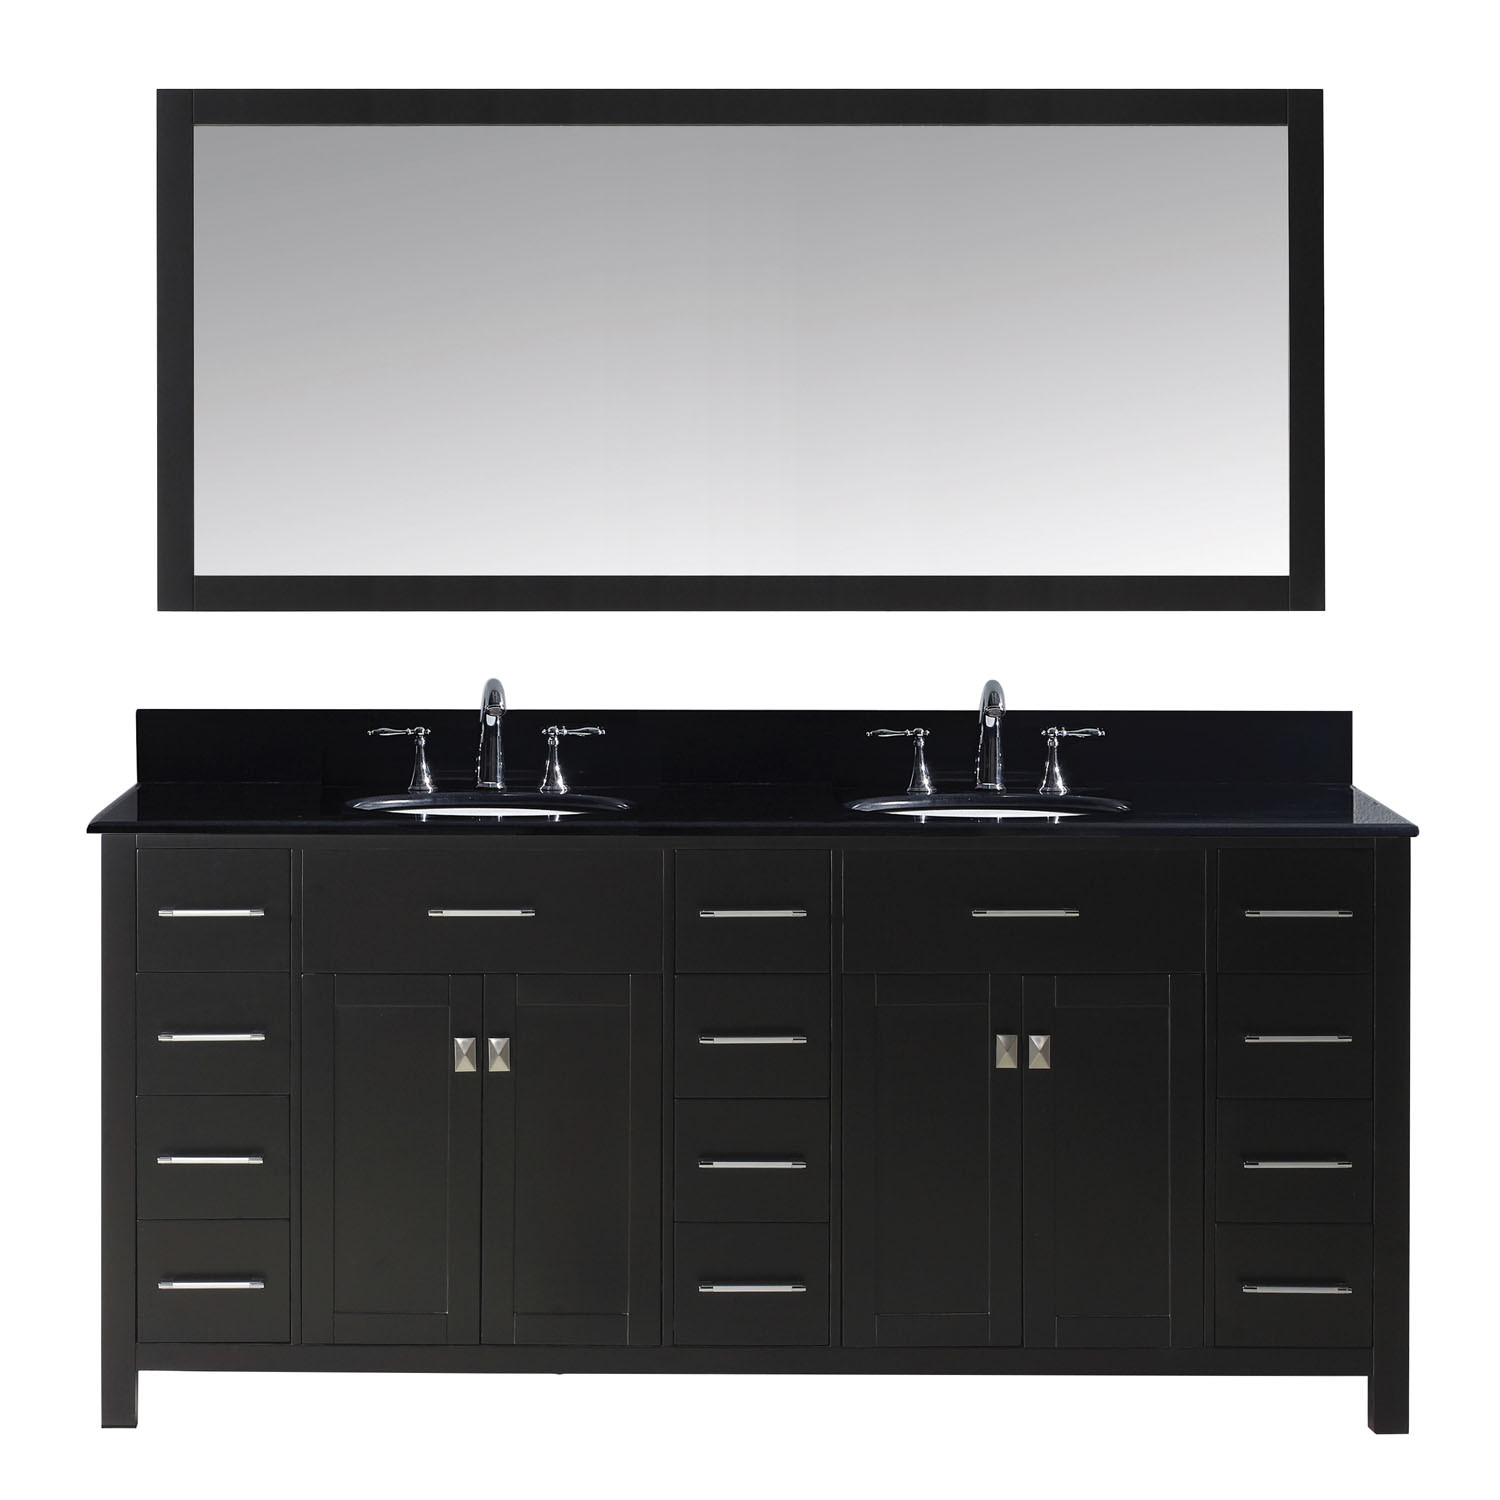 Virtu MD-2172-BGRO-001 Caroline Parkway 72 Inch Double Bathroom Vanity Set